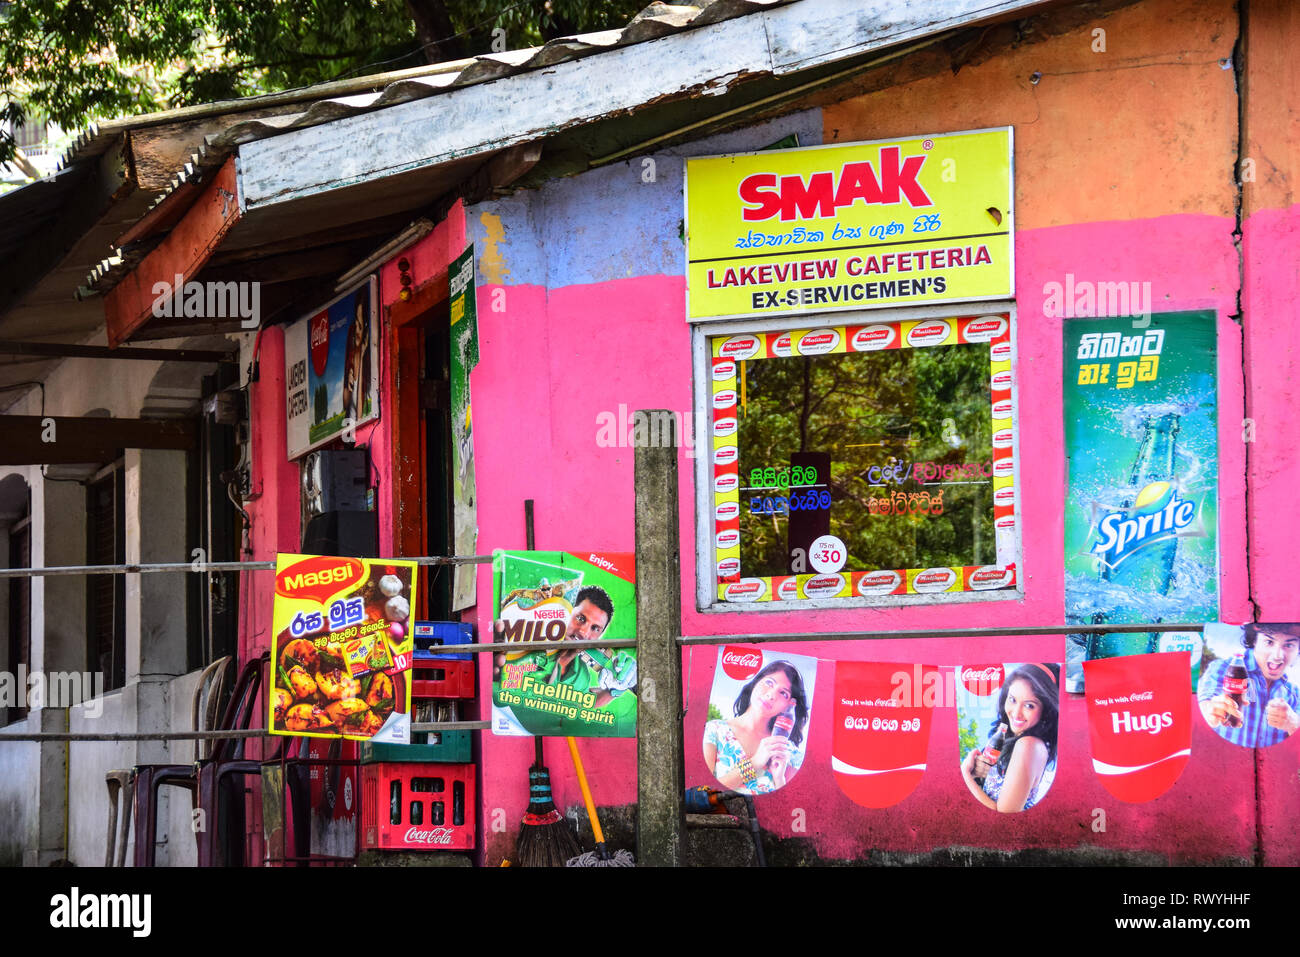 Smak, Lakeview Cafeteria, Kandy, Sri Lanka - Stock Image